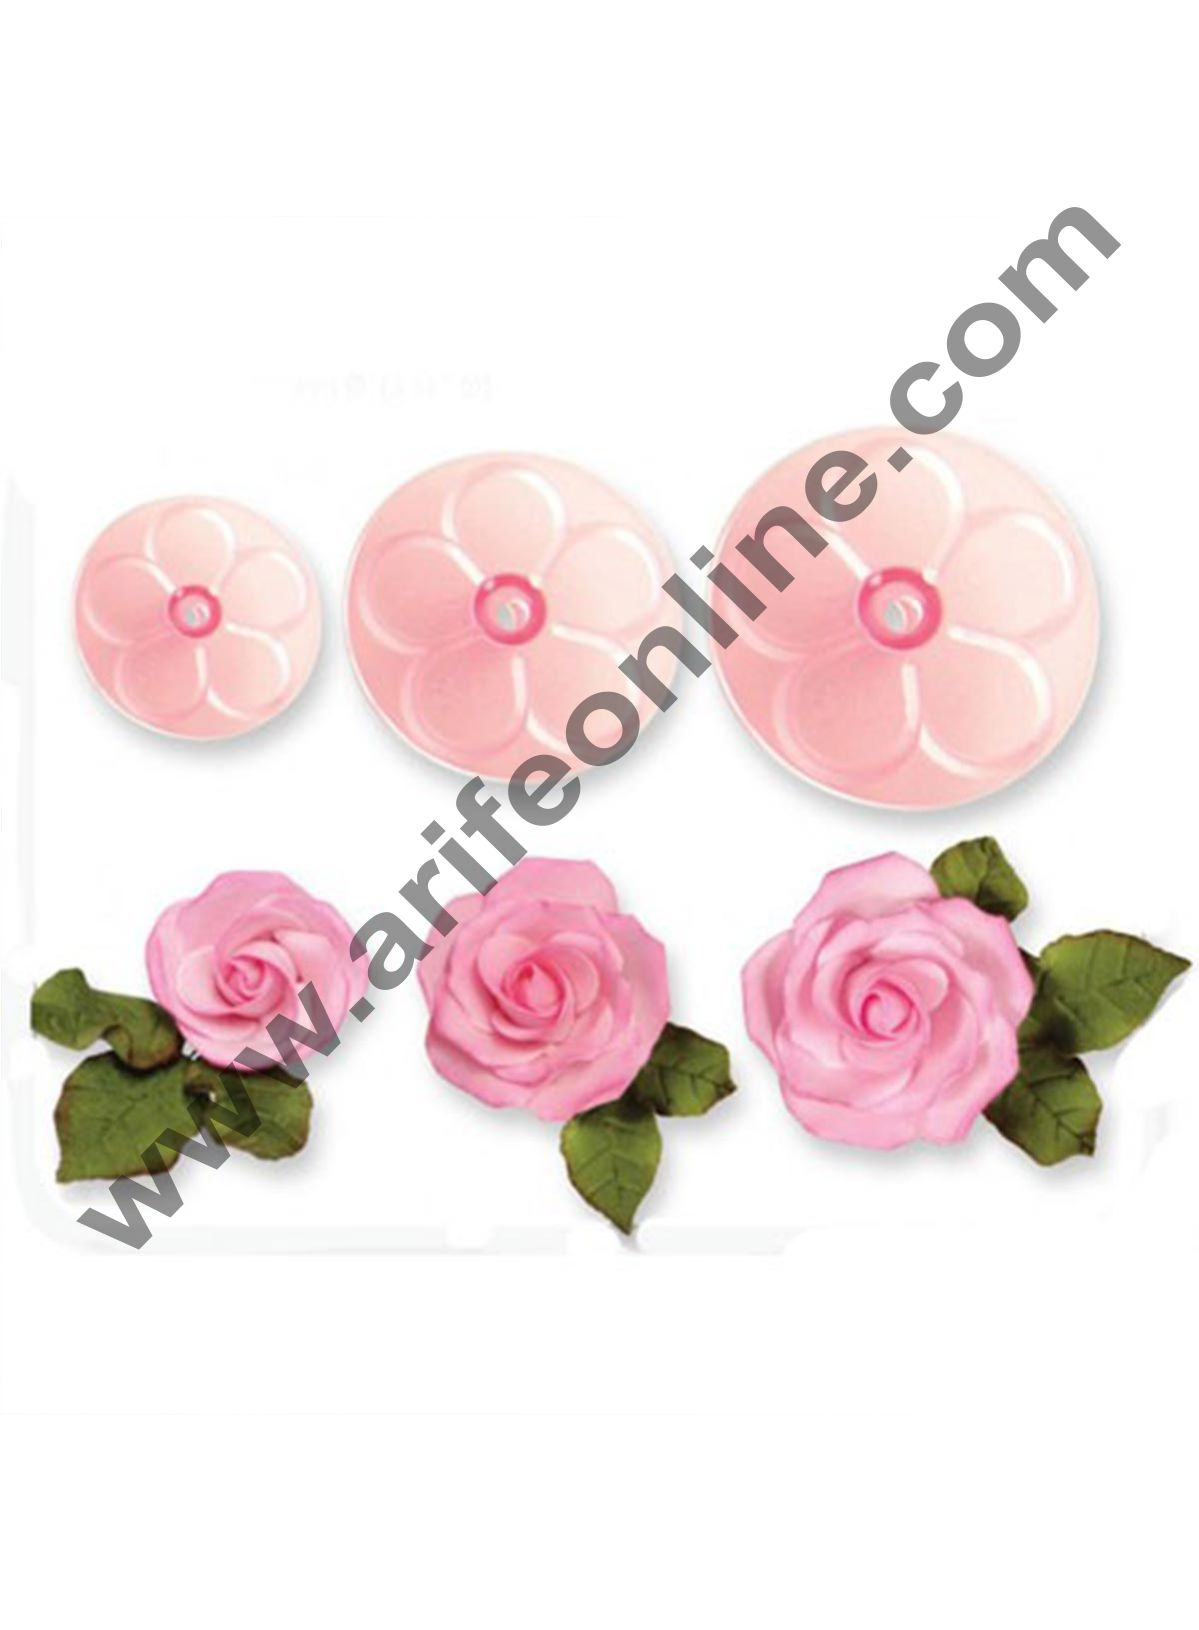 Cake Decor 6 Piece Fondant Roses Flower Mold Cake Decorating Bake Mold Cutter Tool